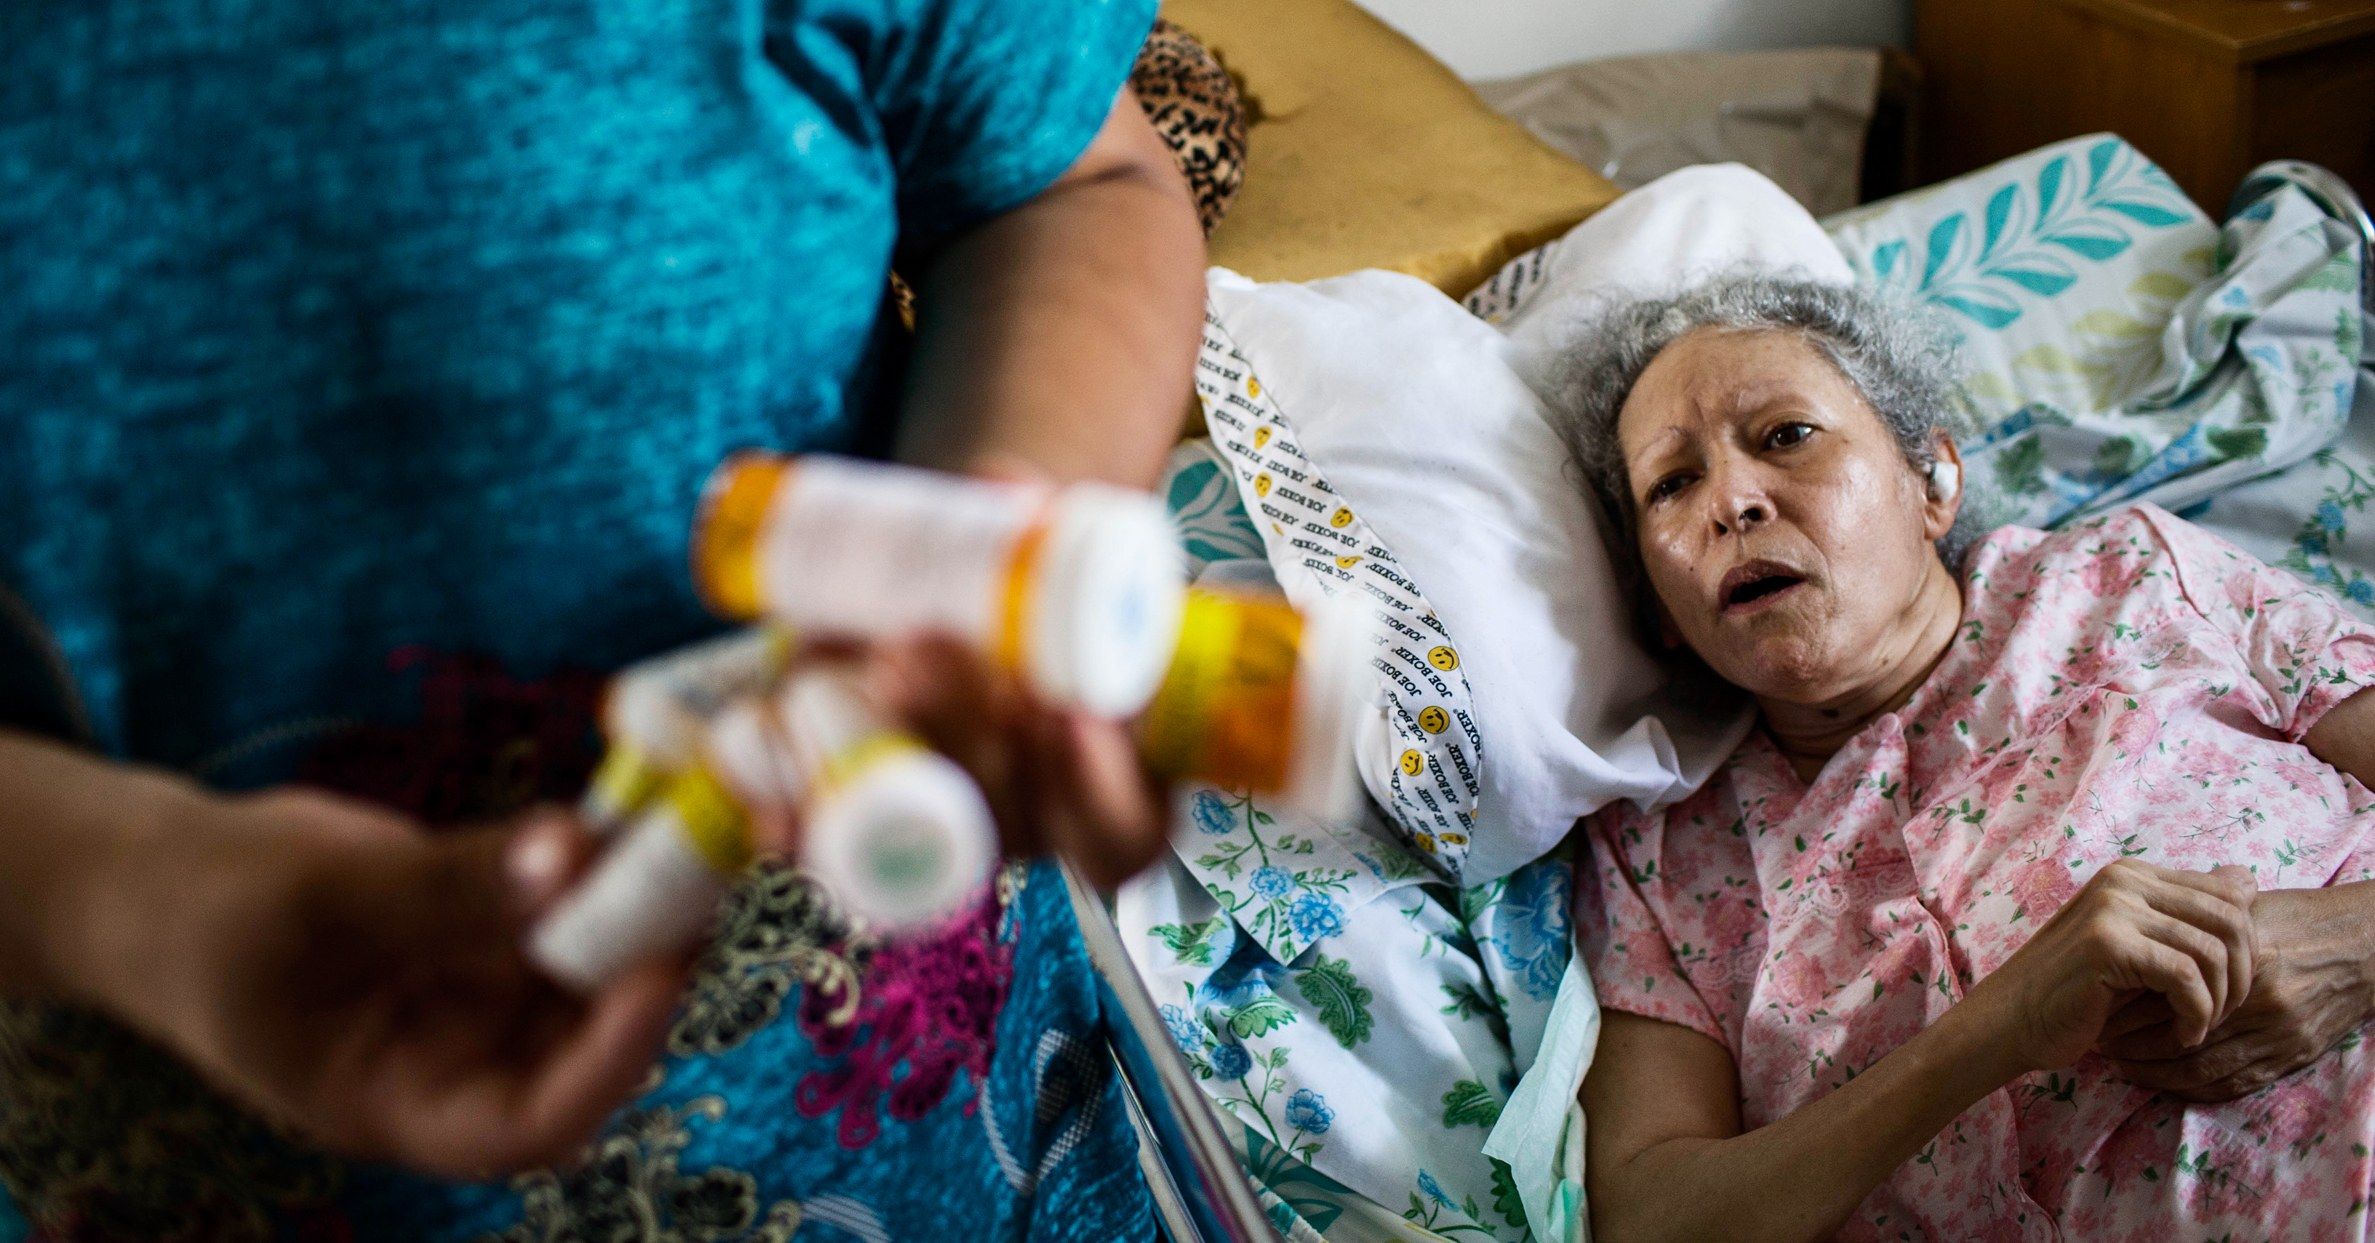 Puerto Rico's Slow-Motion Medical Disaster